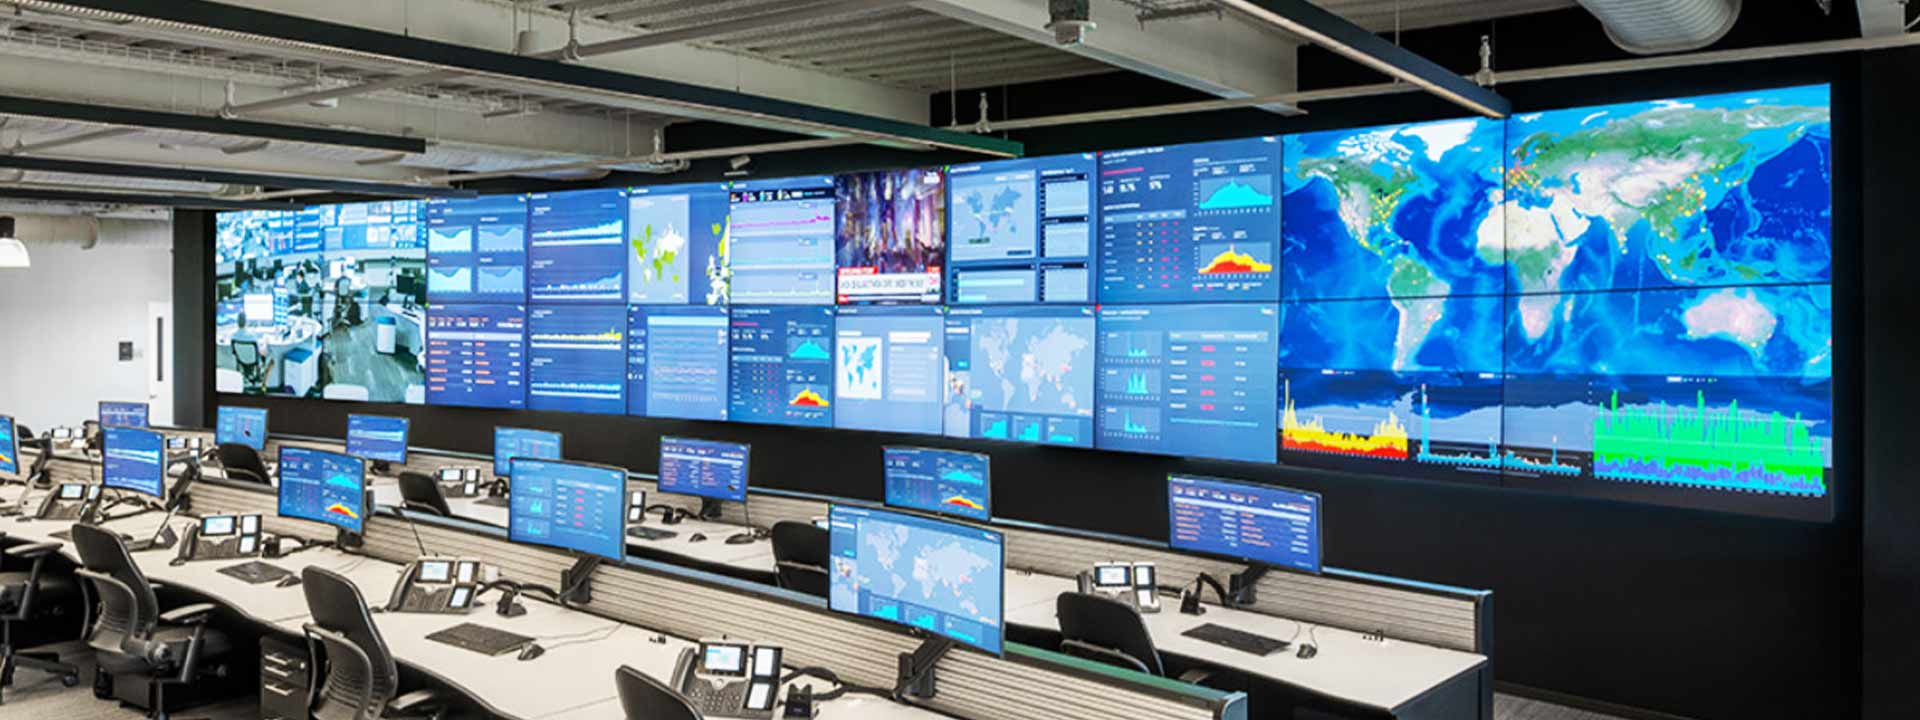 Command and Control Centre